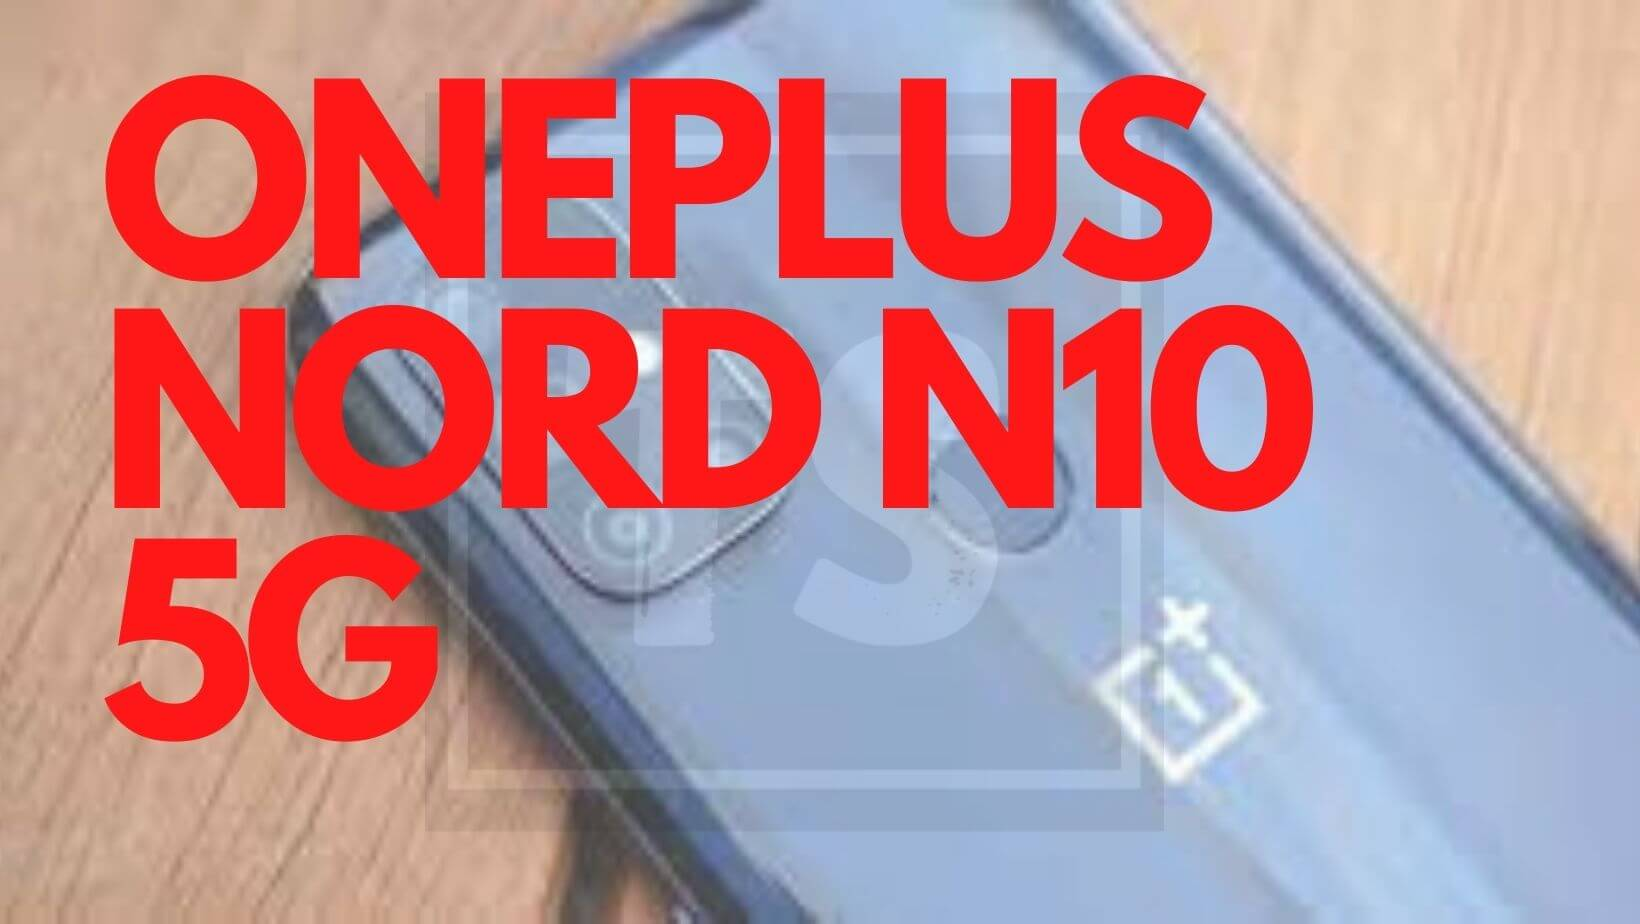 OnePlus Nord N10 5G: REVIEW, release date